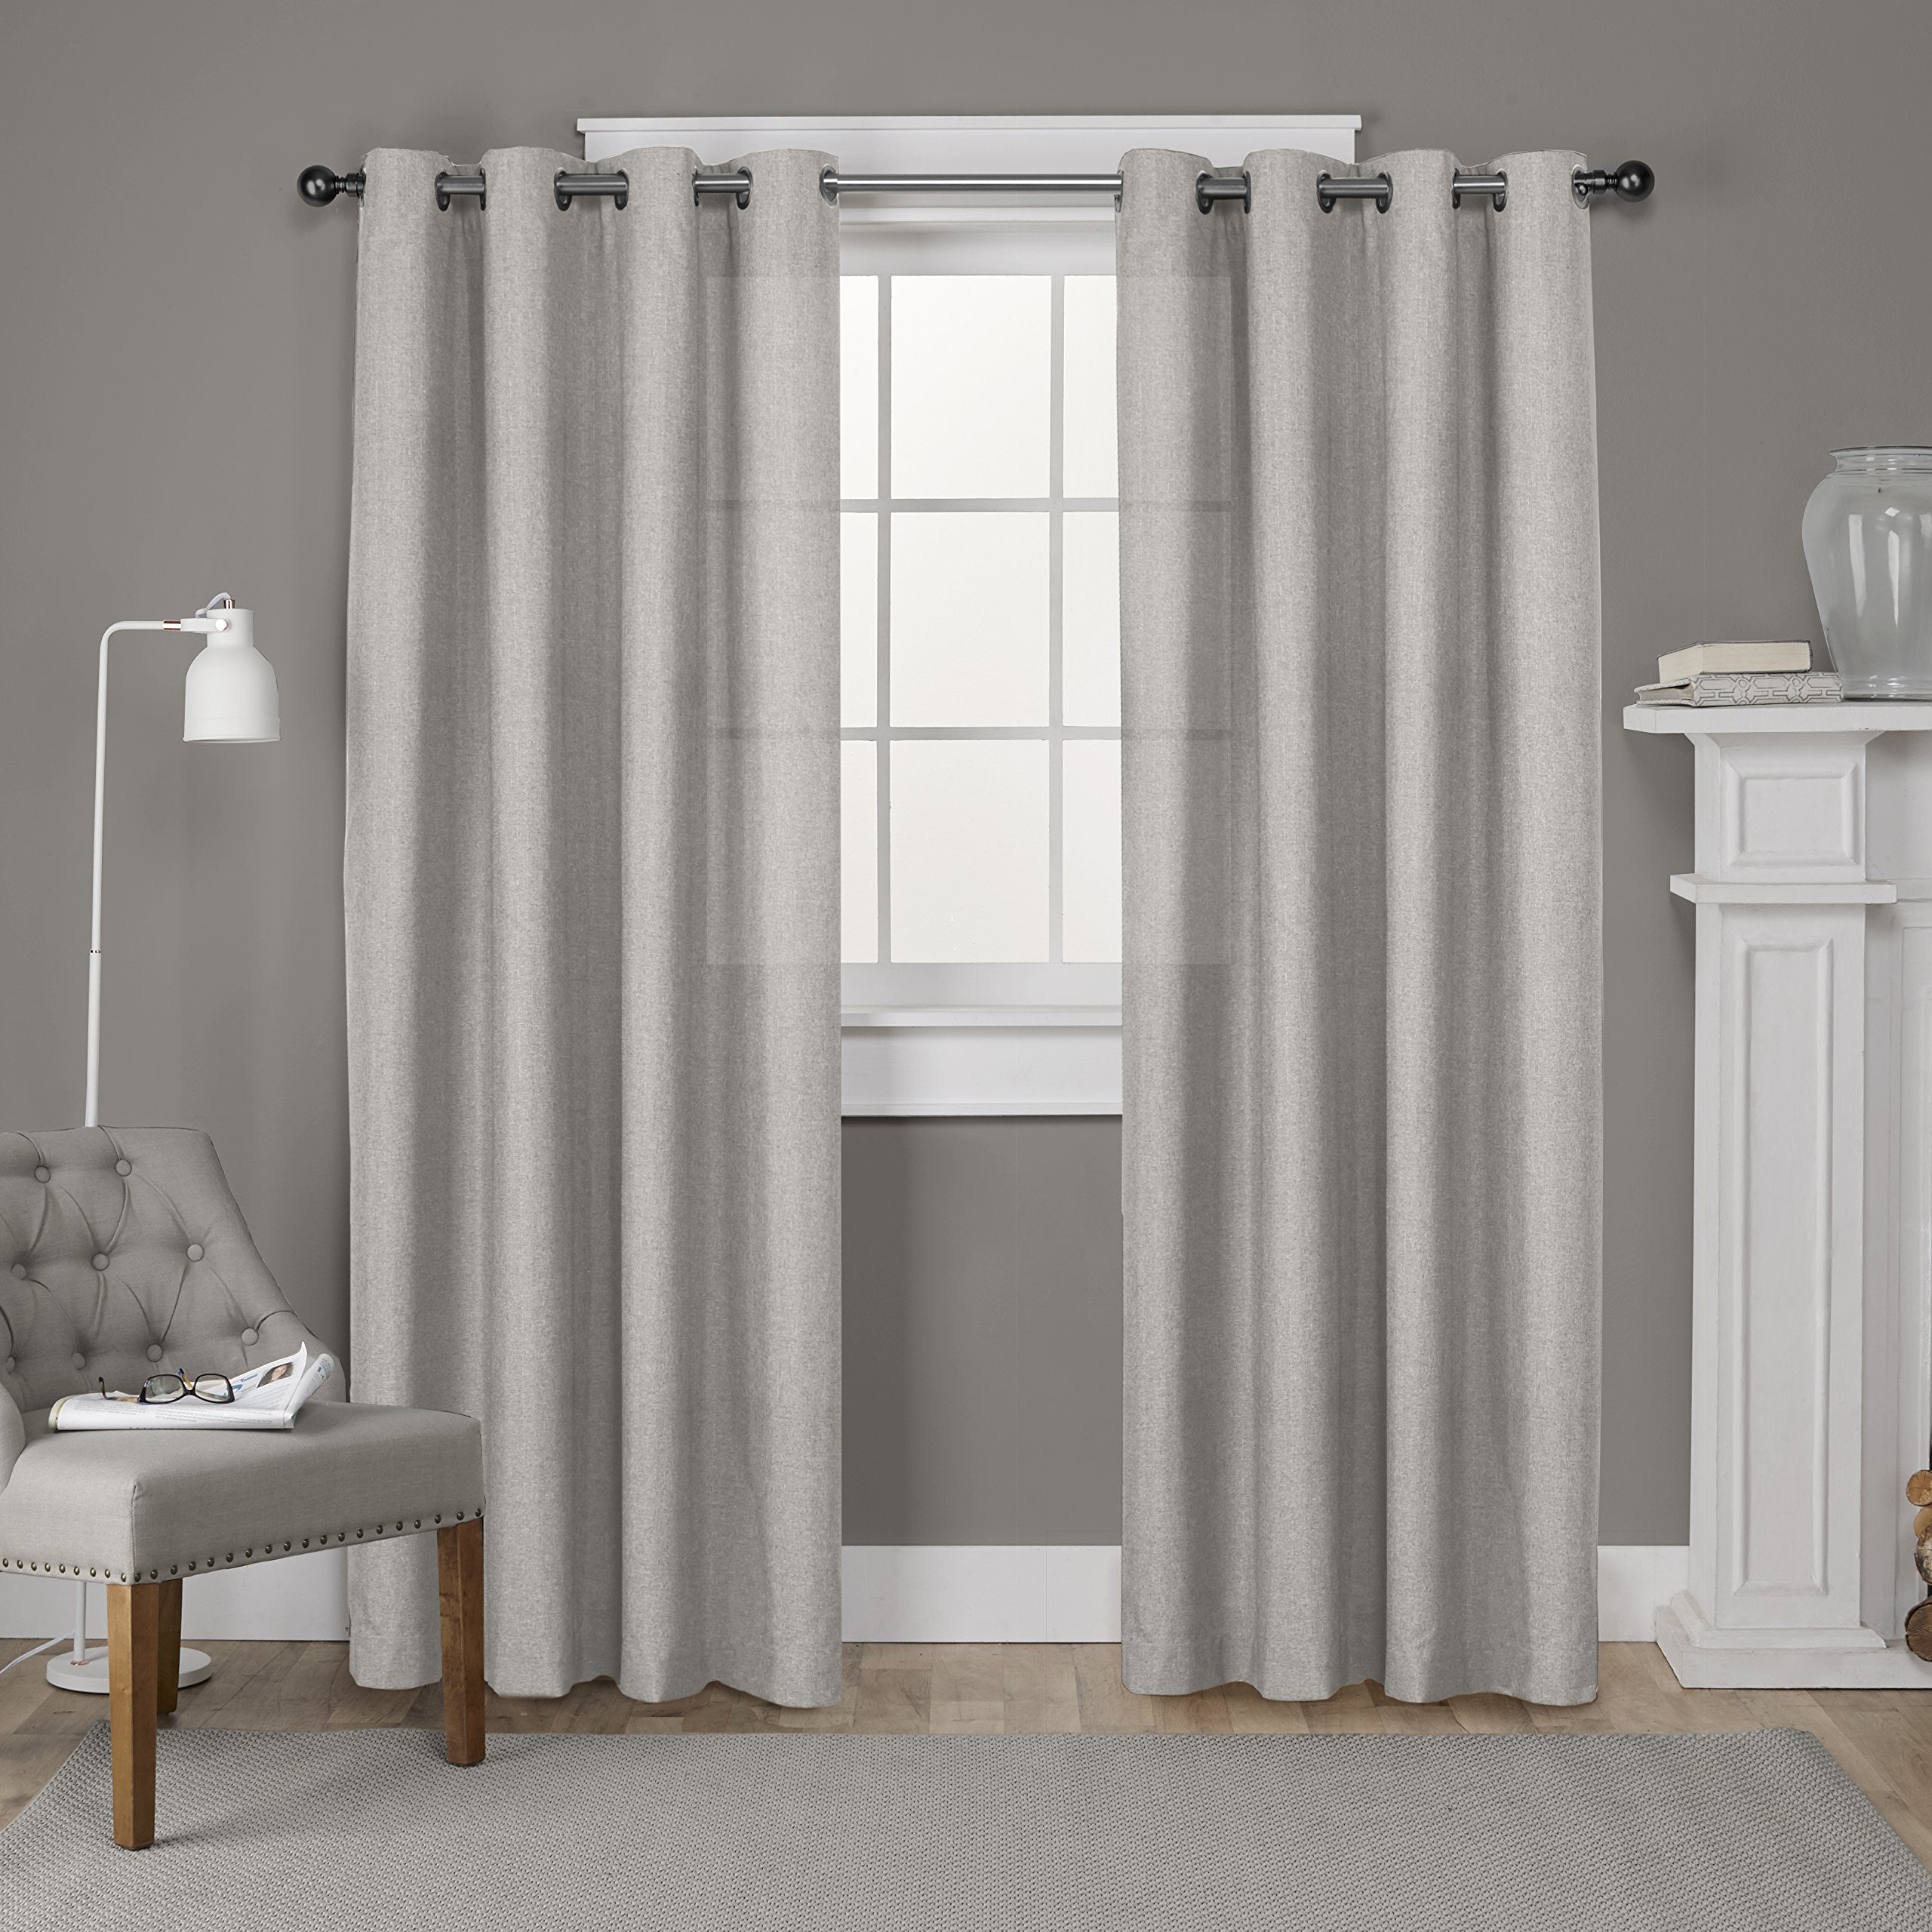 Exclusive Home Curtains Loha Linen Window Curtain Panel Pair with Grommet Top, 52x84, Beige, 2 Piece